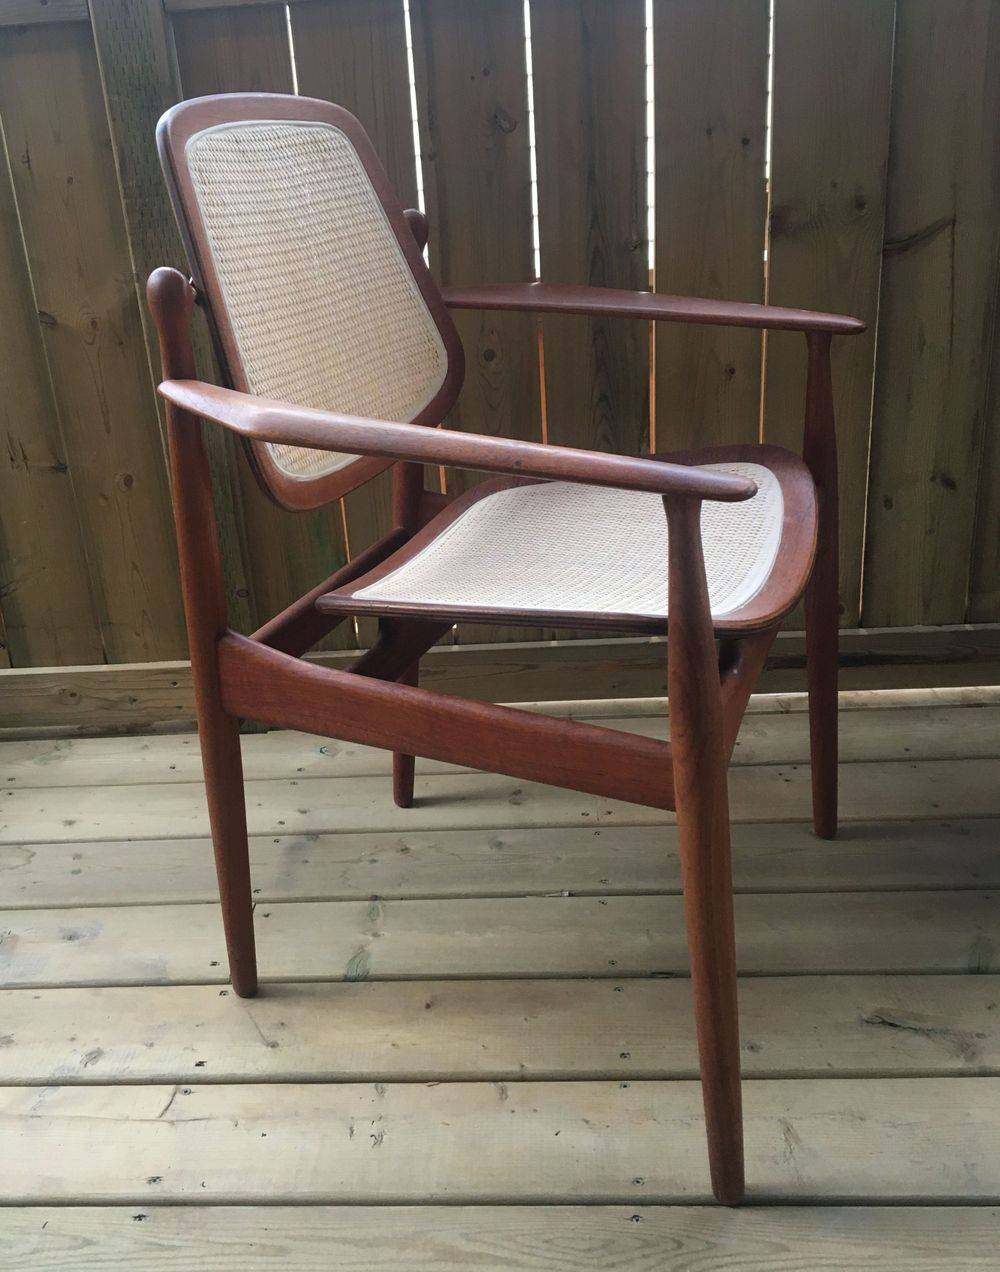 Armchair model FD186 designed by Arne Vodder and manufactured by France & Son, Denmark 1956.